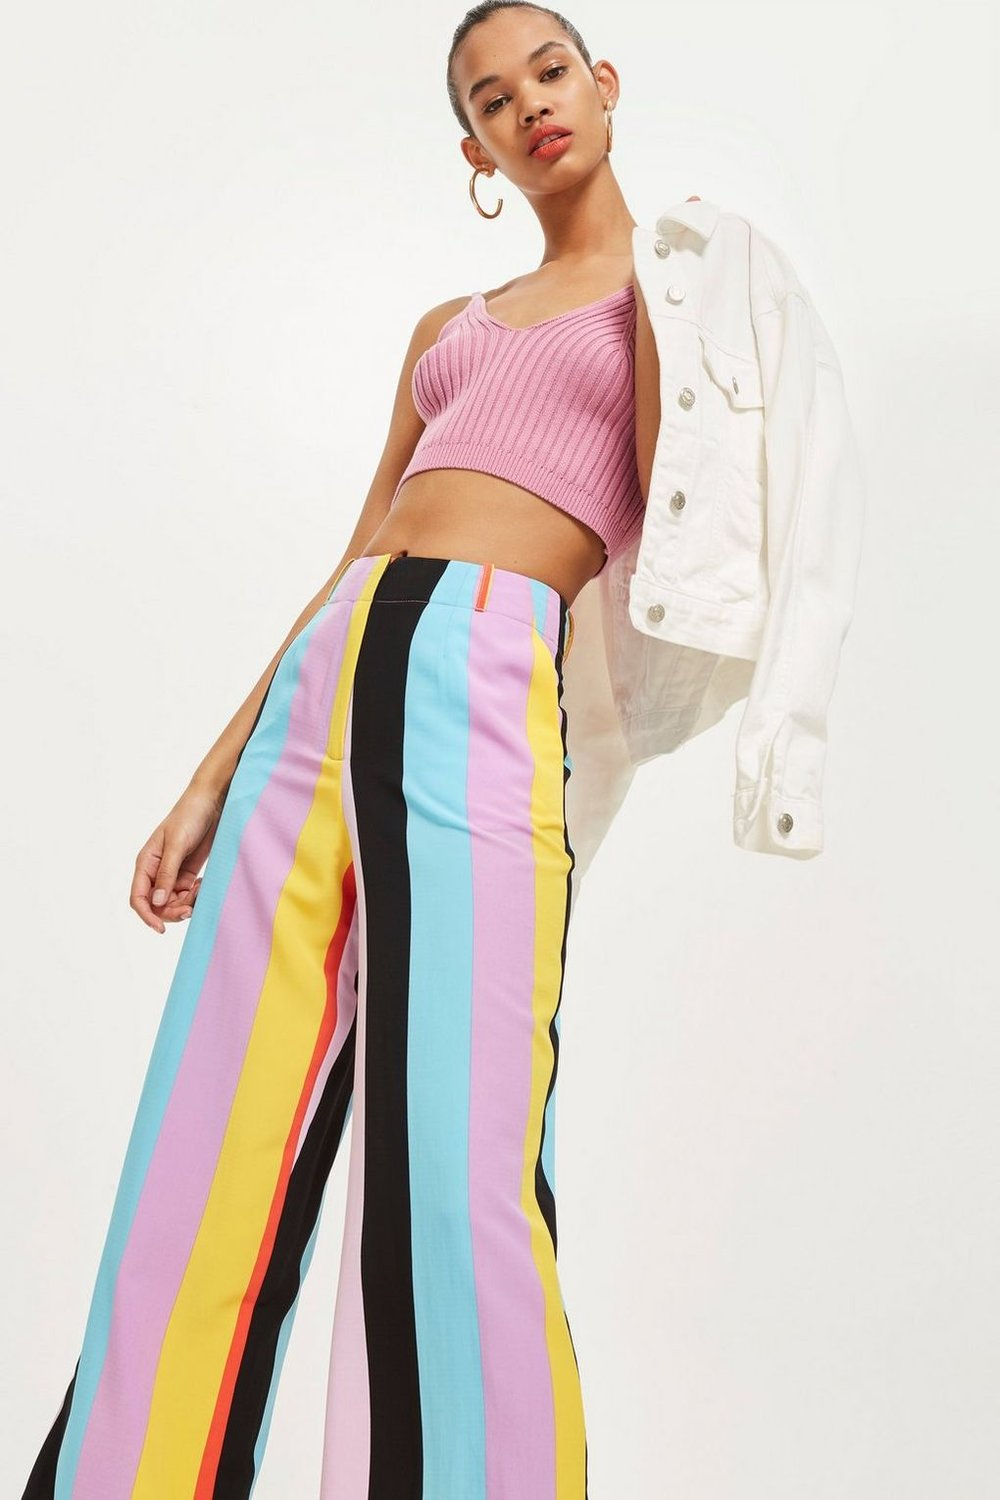 3. the slouchy trousers - TOPSHOP: Rainbow Slouch Trousers, £39Add a pop of colour to your outfit with these high-waisted wide-leg trousers from Topshop. Perfect for when it's too cold for a skirt but too warm for tights, pair them with platform trainers and a fitted tee.